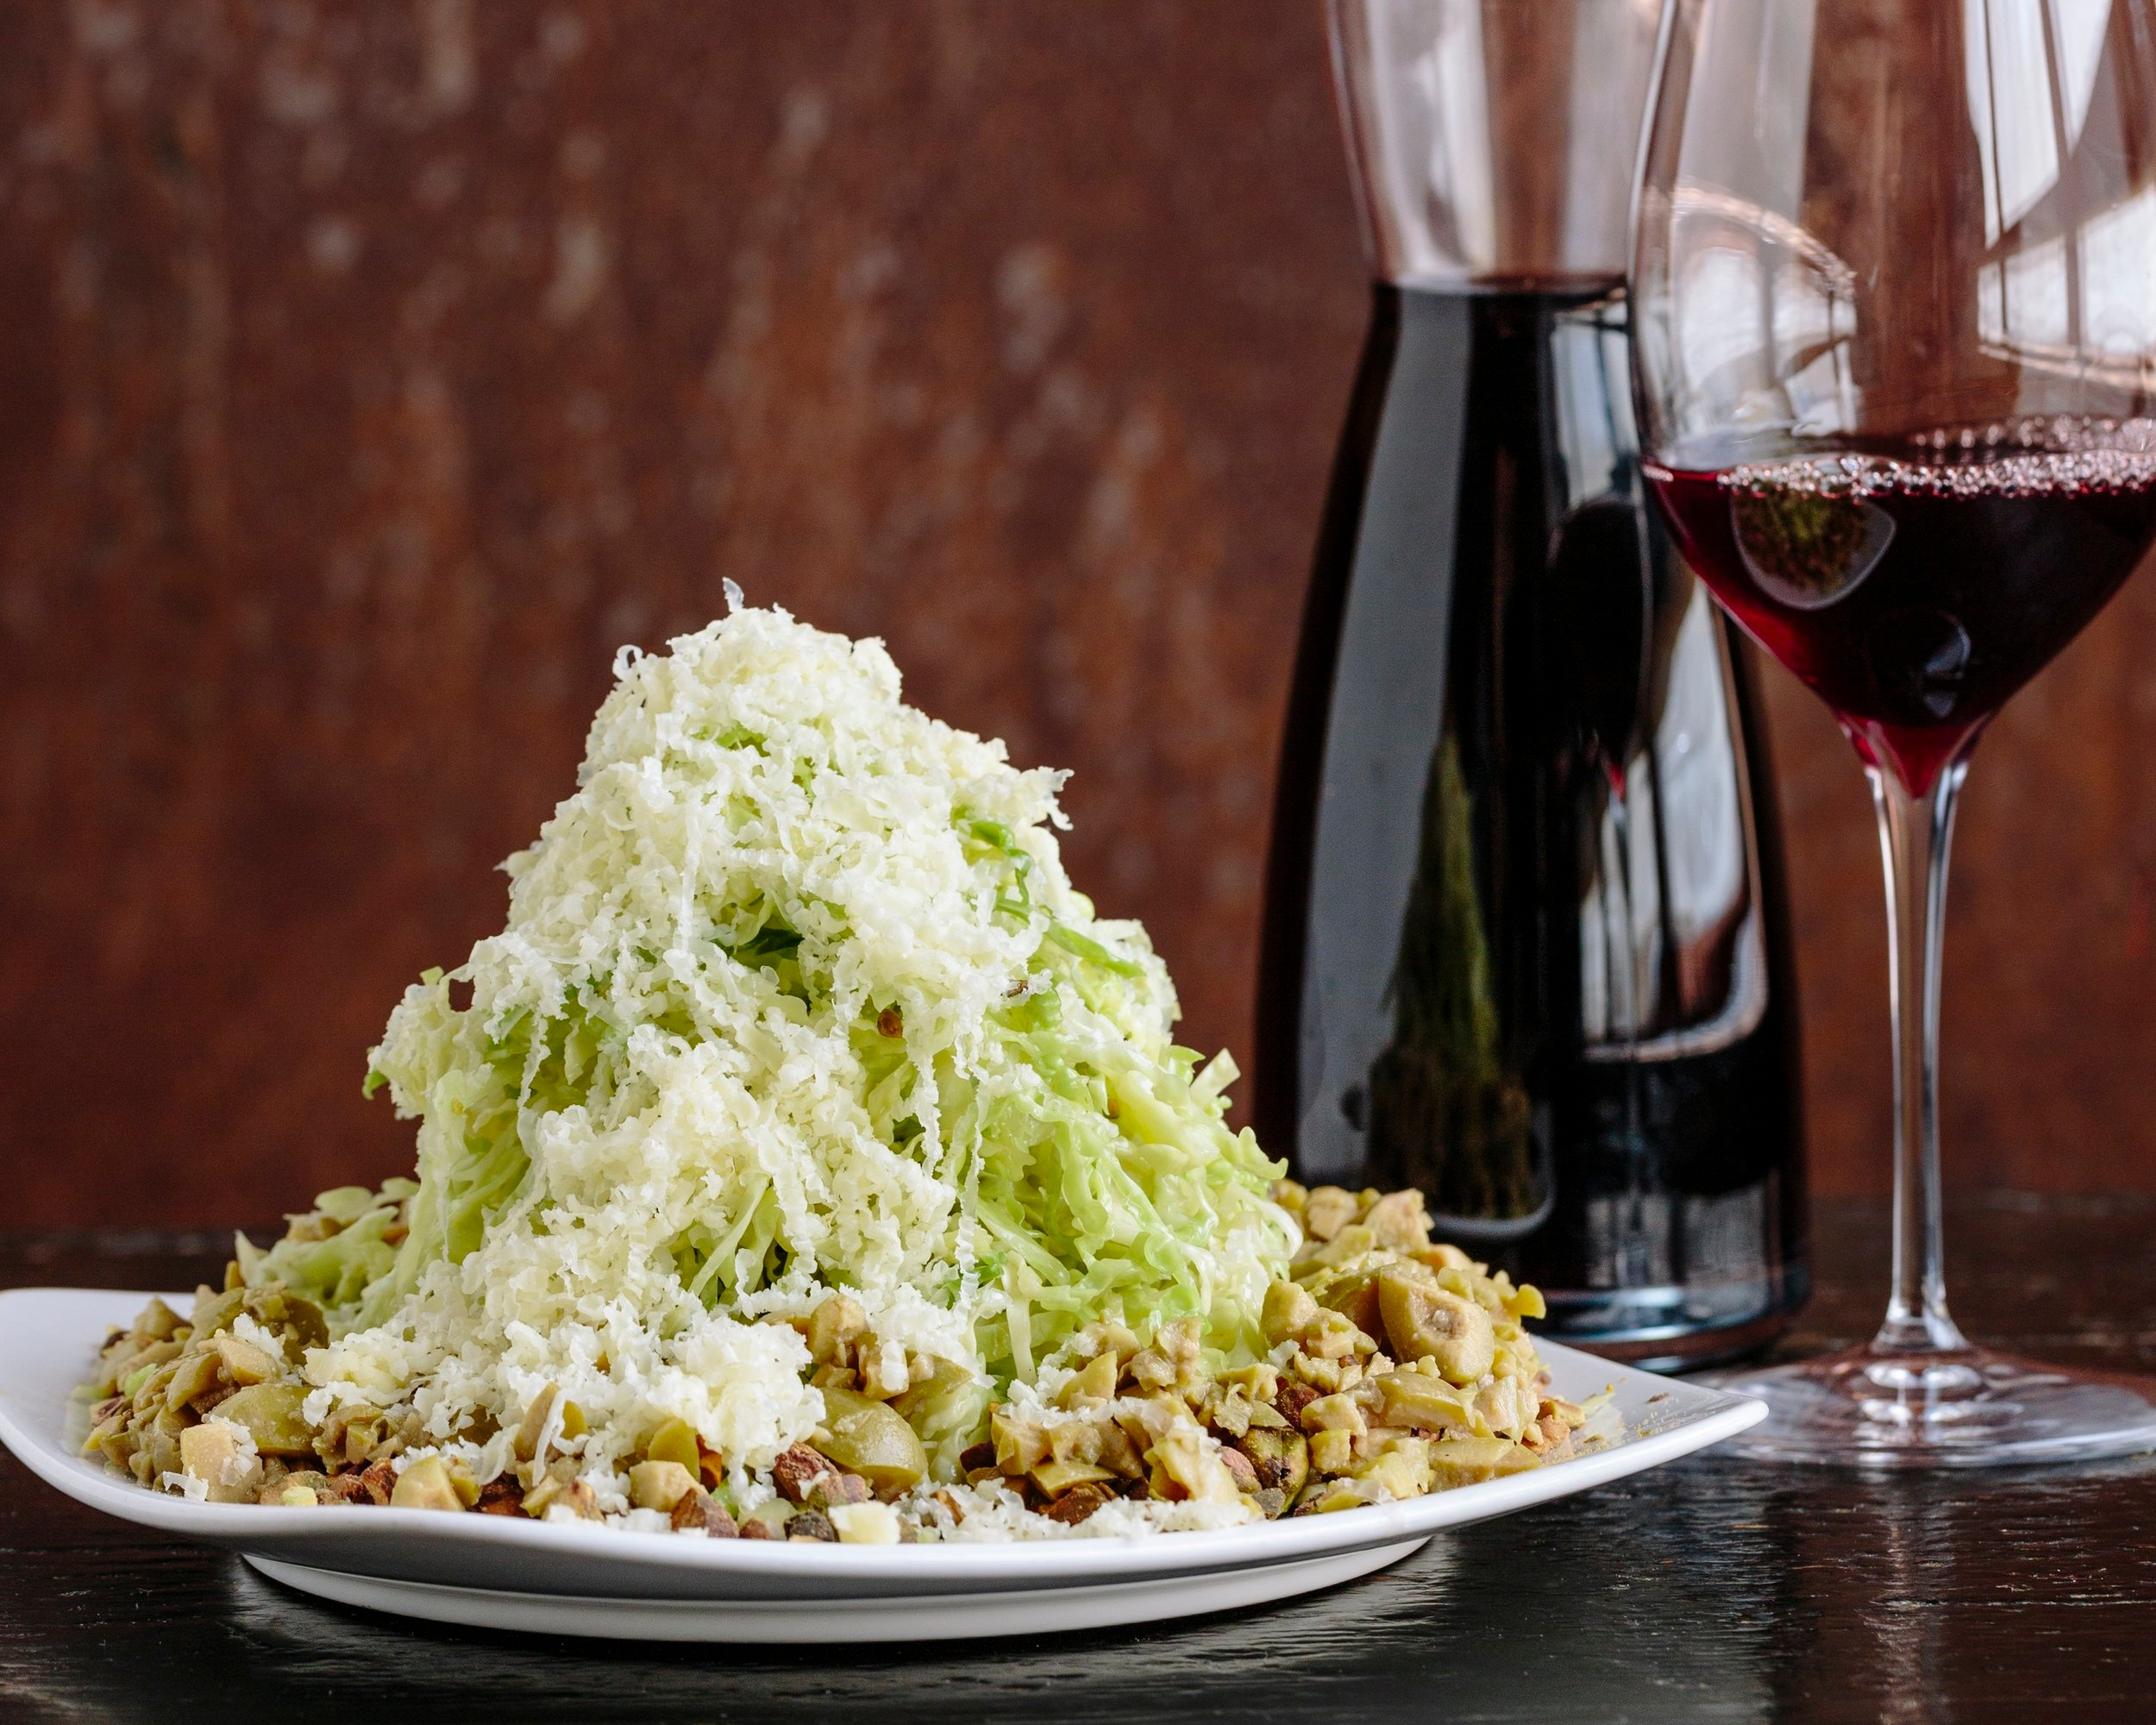 Meal topped with lettuce and cheese by a glass of red wine